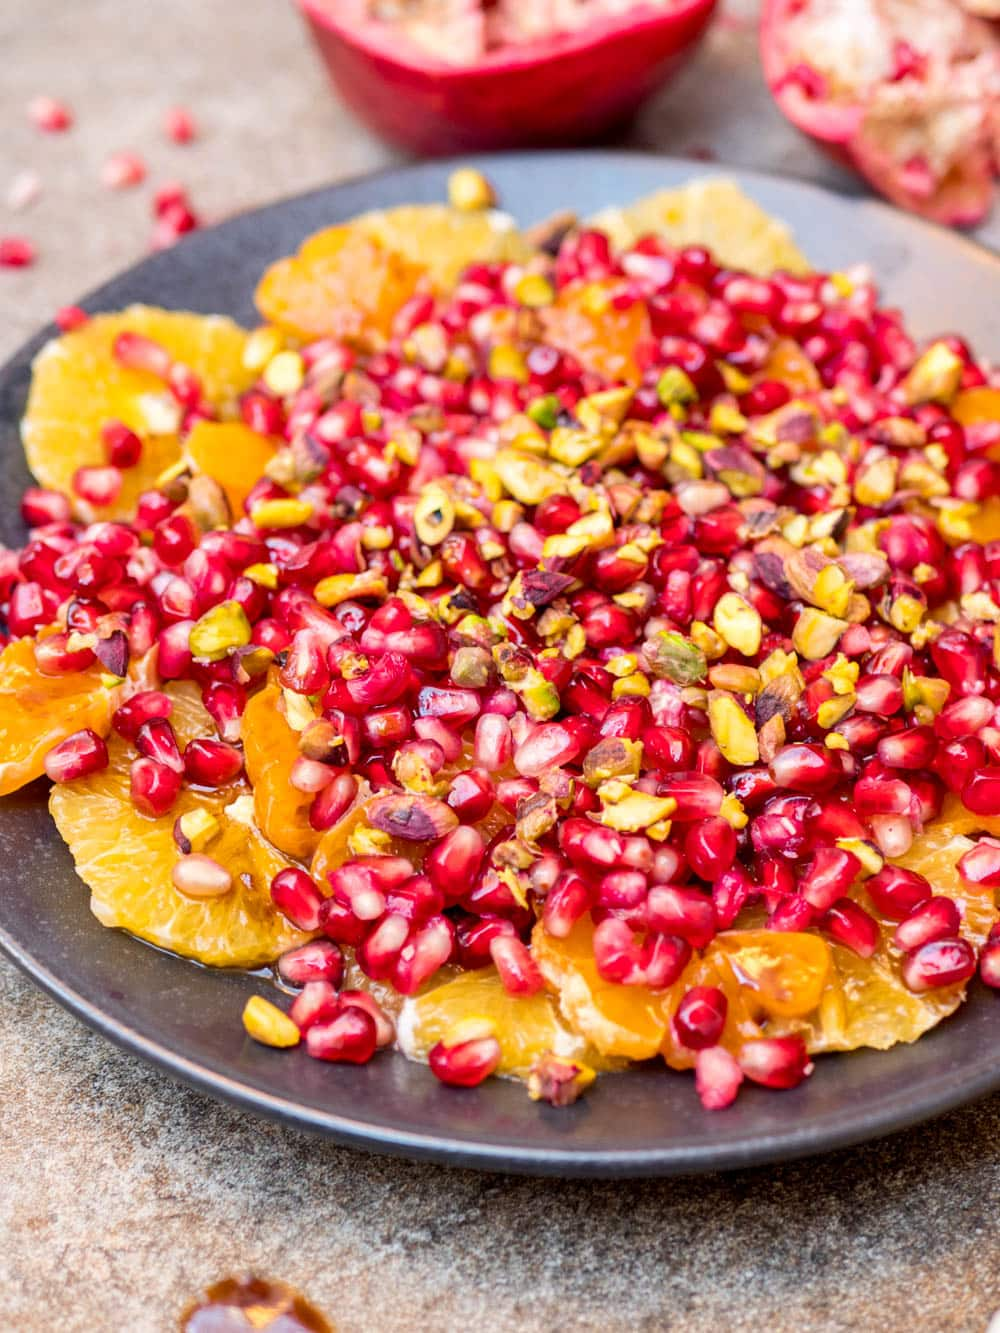 Winter fruit salad with oranges, clementines, pomegranate and spiced syrup - recipe / A kitchen in Istanbul